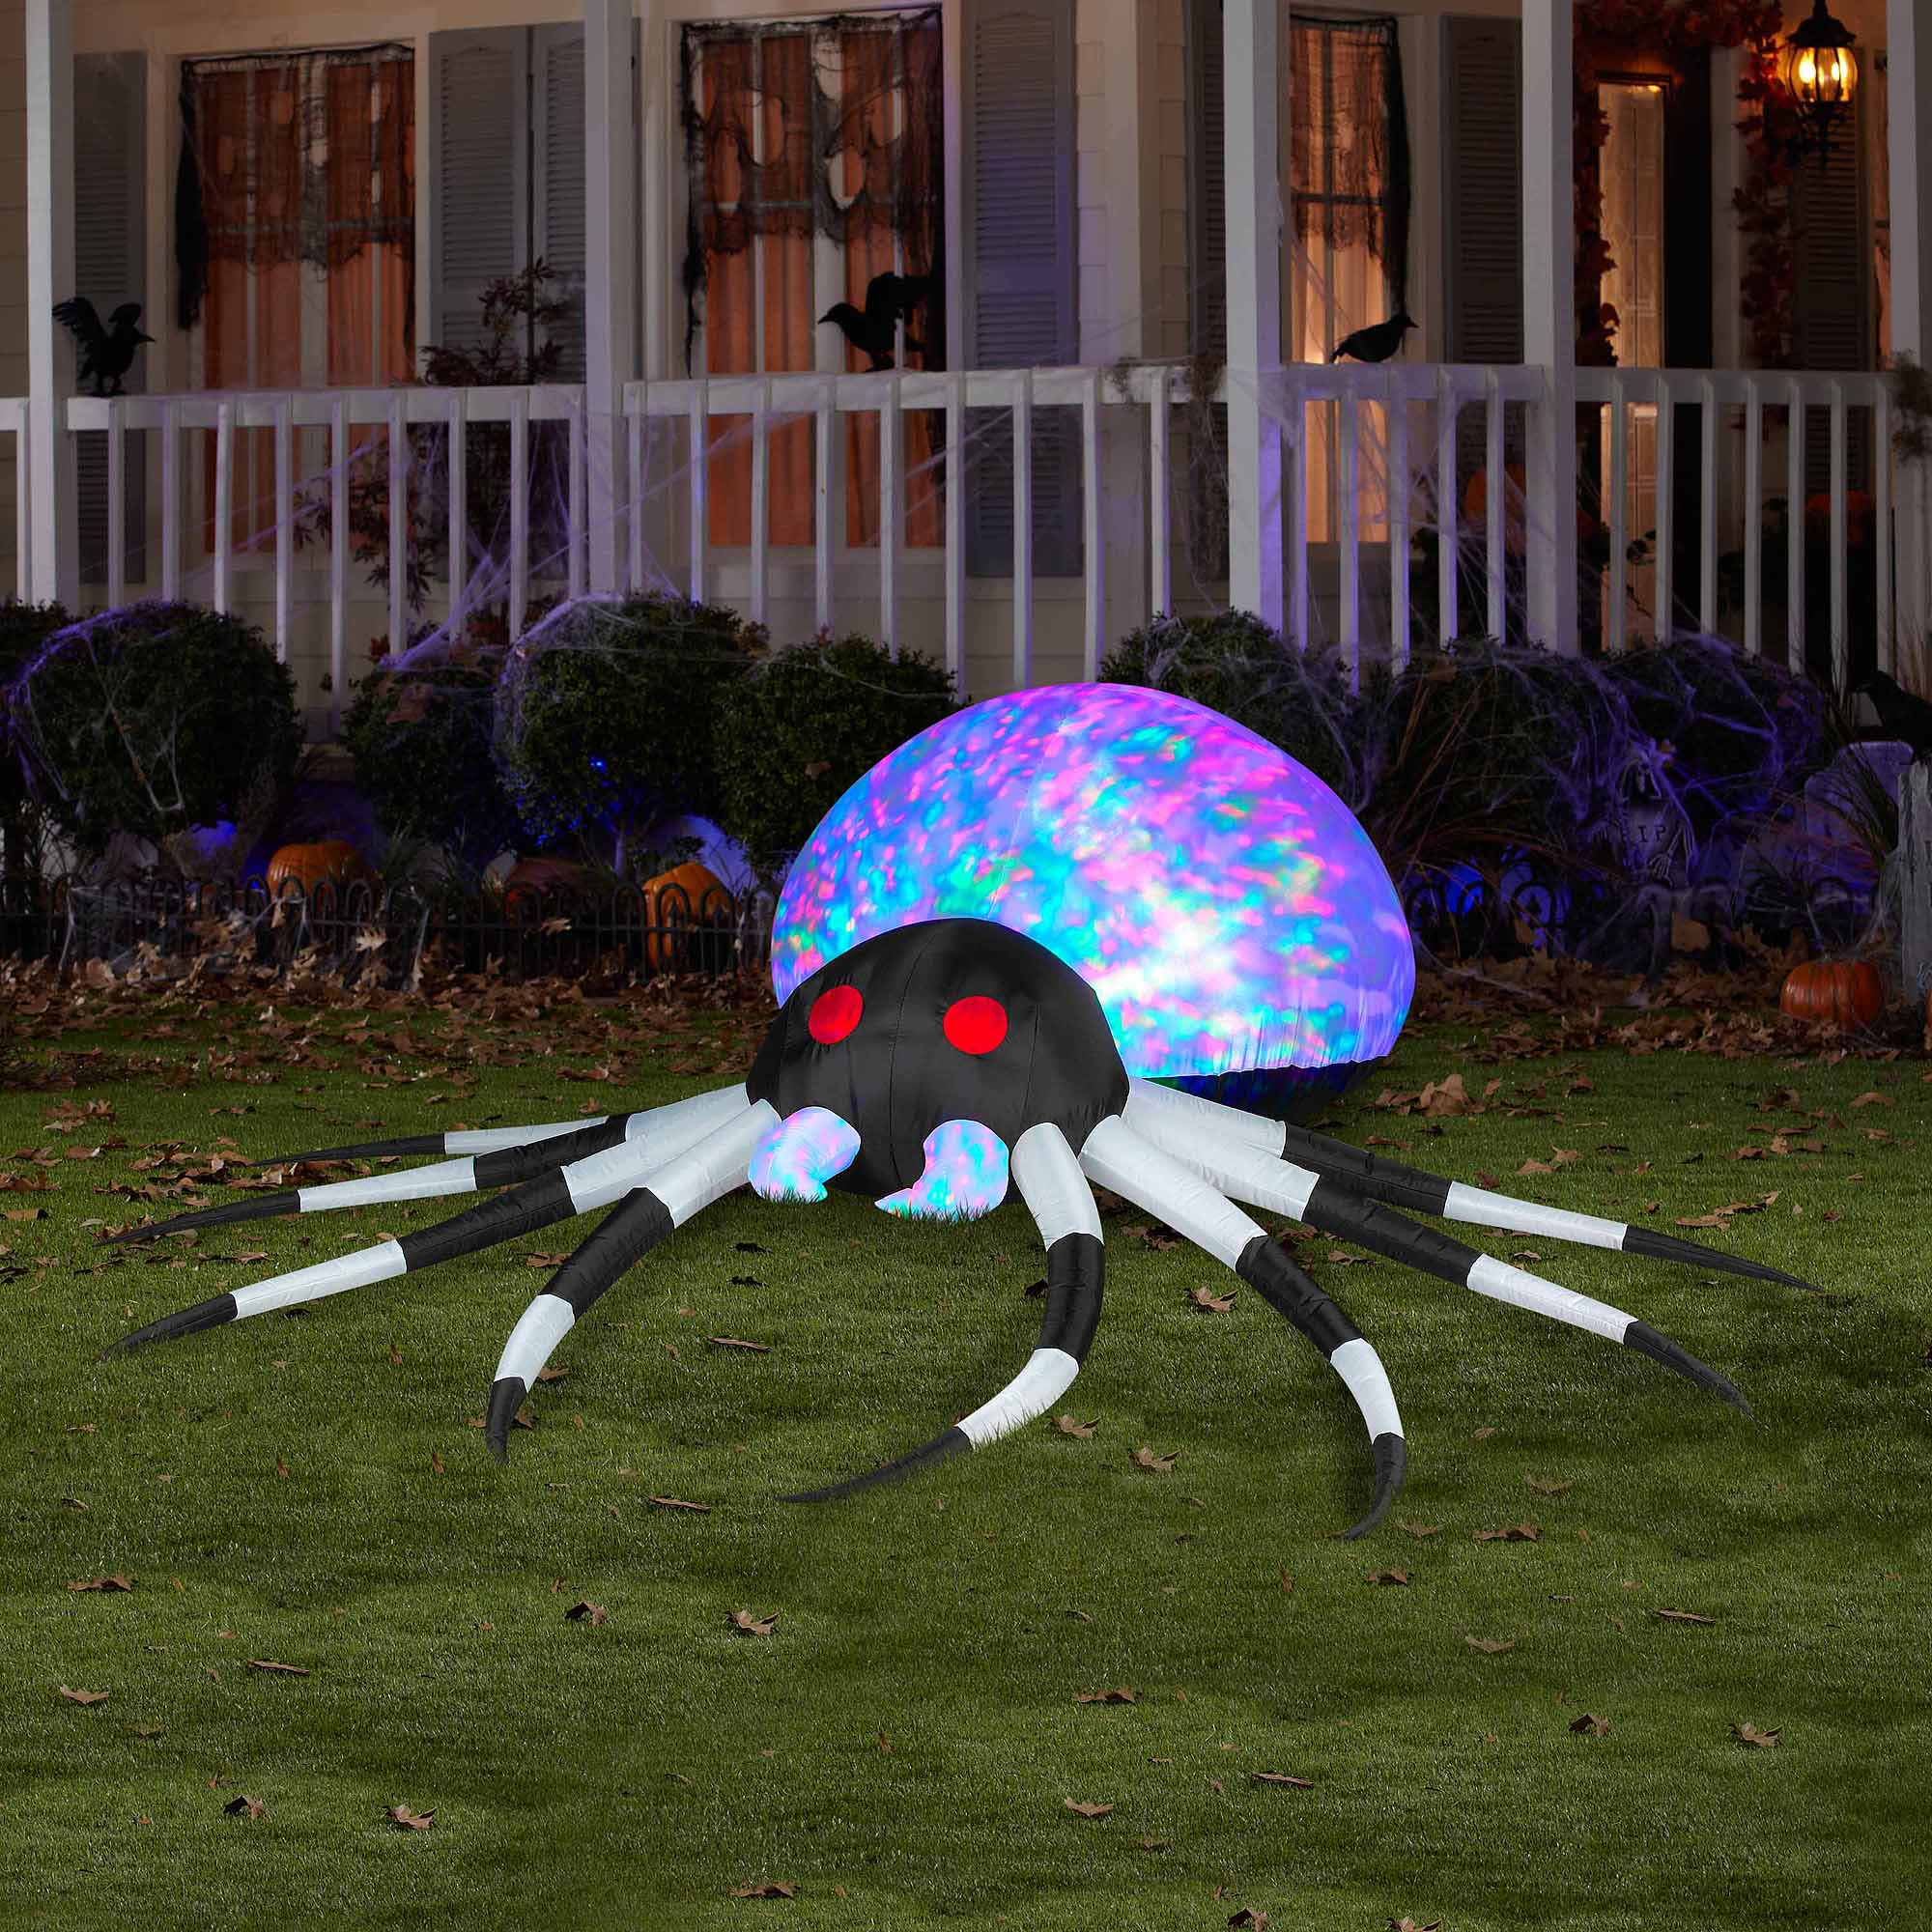 3 Projection Airblown Inflatables Kaleidoscope Black White Spider